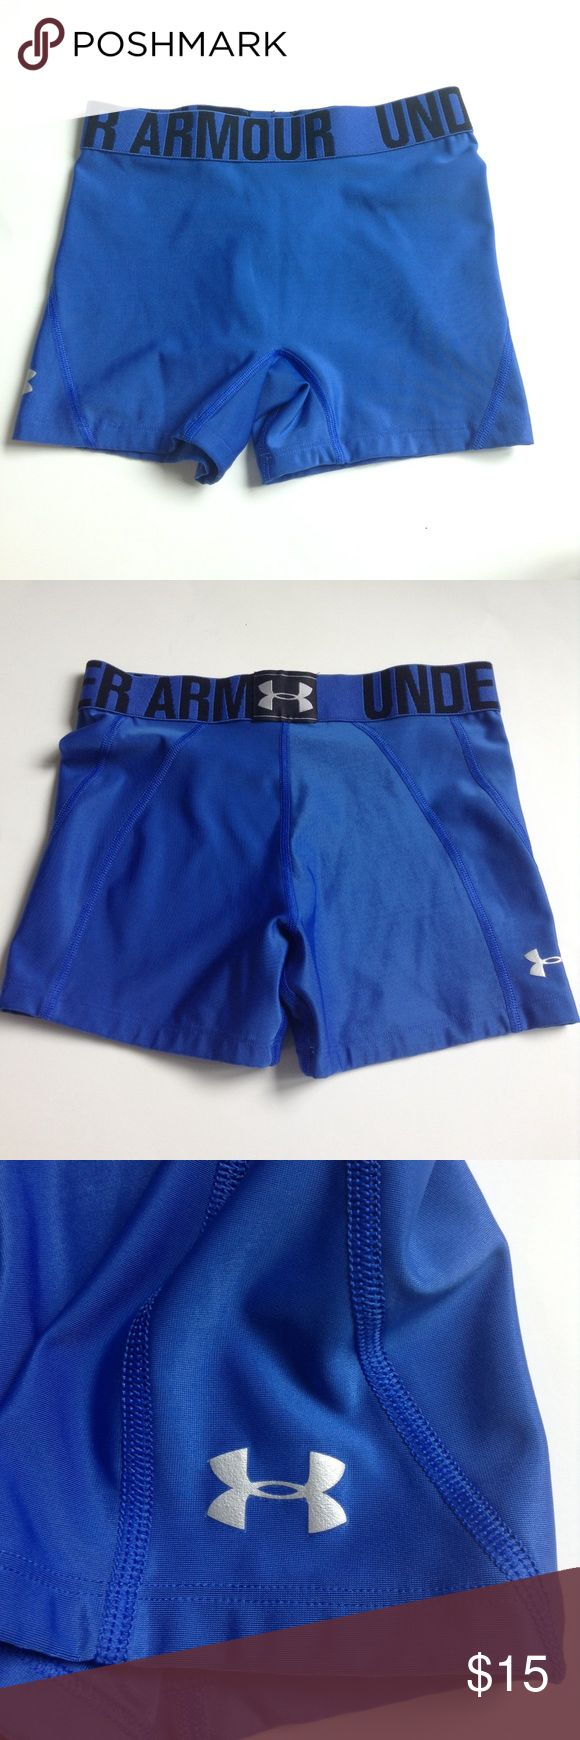 Under Armour compression shorts women's XS This is a pair of  purple and black like new under Armour compression shorts in a women's XS. They are free from any stains rips or tears, and come from a smoke free home. They are great for any kind of workout a